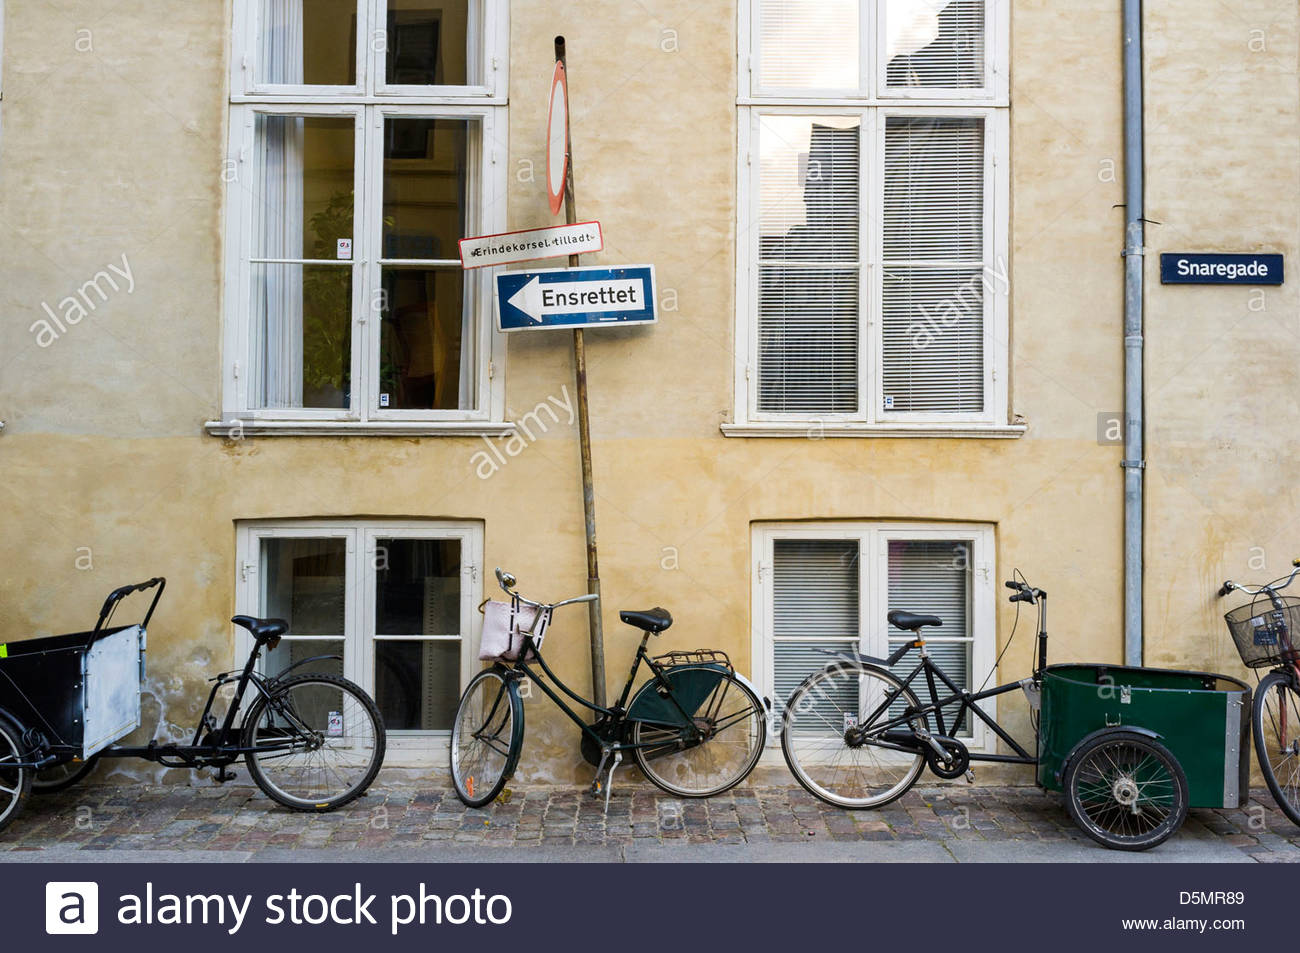 Vélos alignés contre un mur sur un trottoir au centre de Copenhague, Hovedstaden, Danemark Région Photo Stock